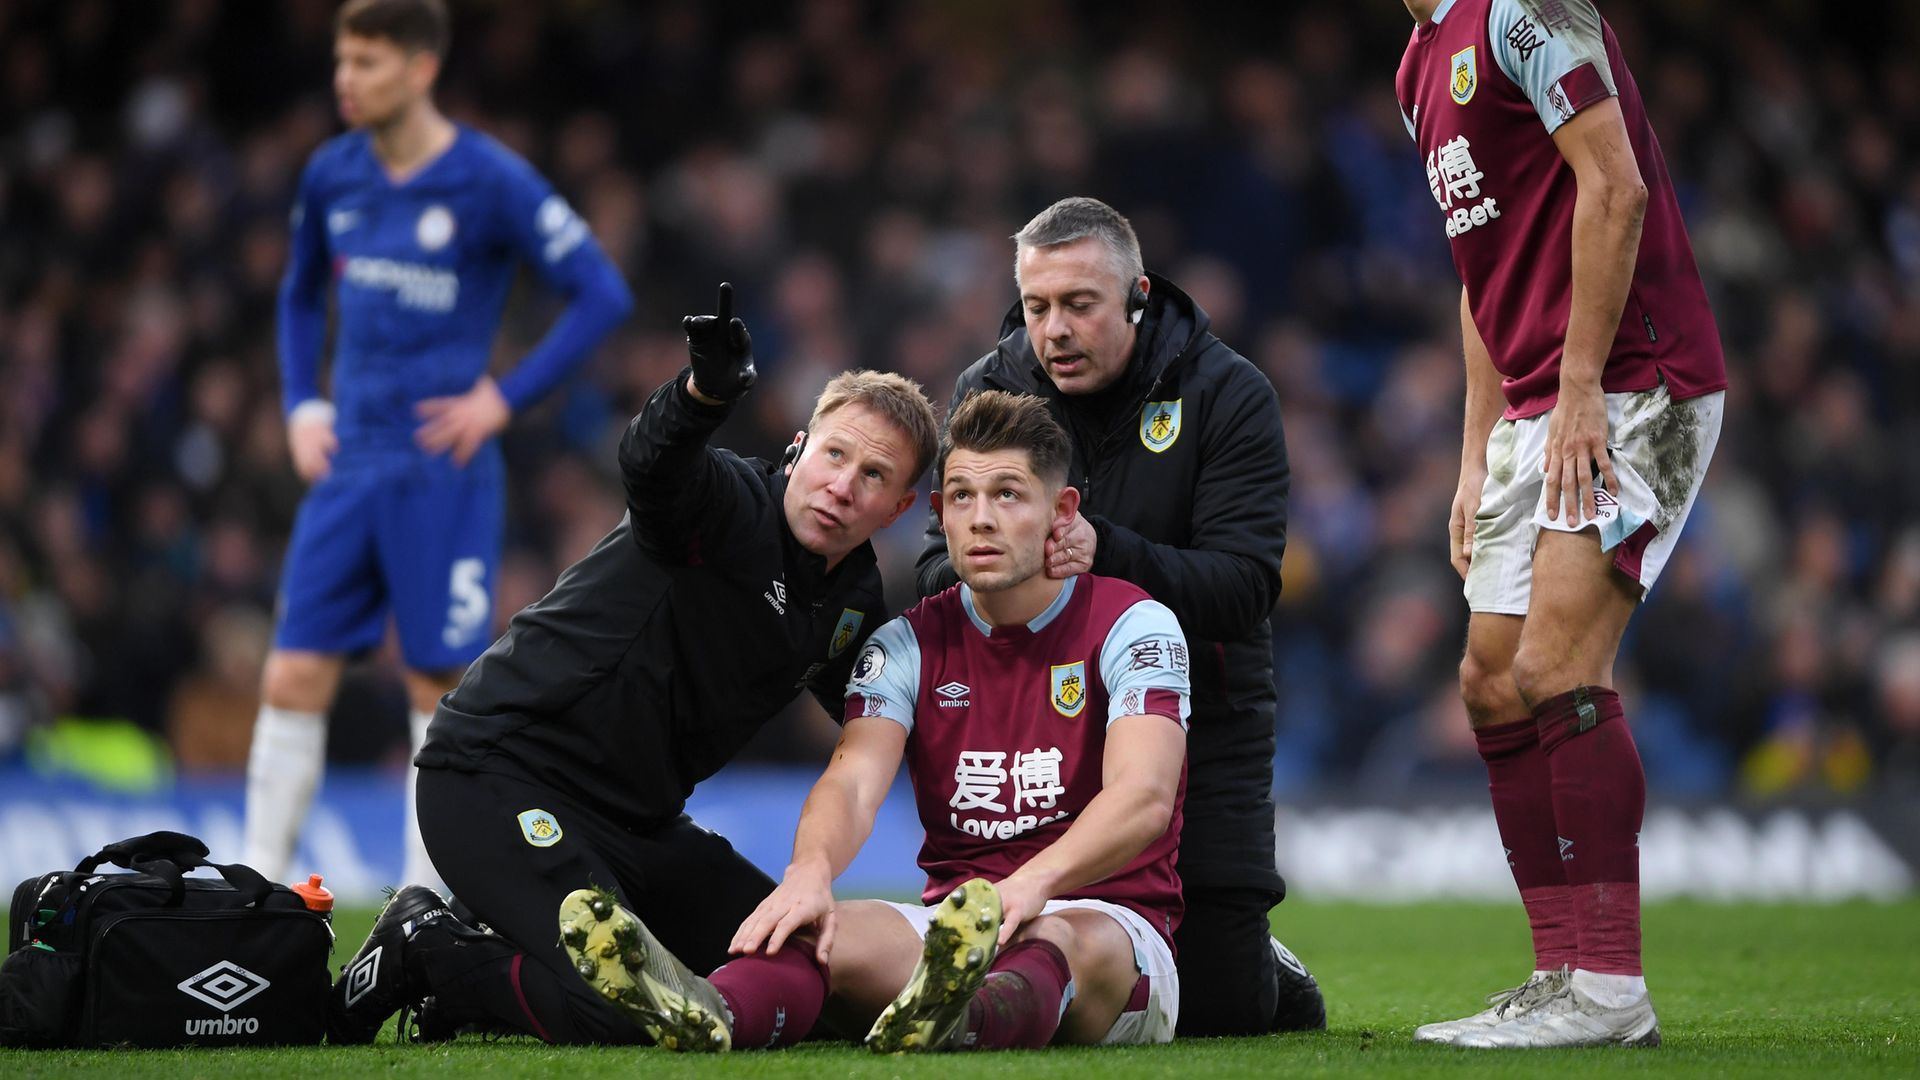 James Tarkowski of Burnley is assessed for concussion during a Premier League match between Chelsea and Burnley in January 2020 - Credit: Photo by Mike Hewitt/Getty Images